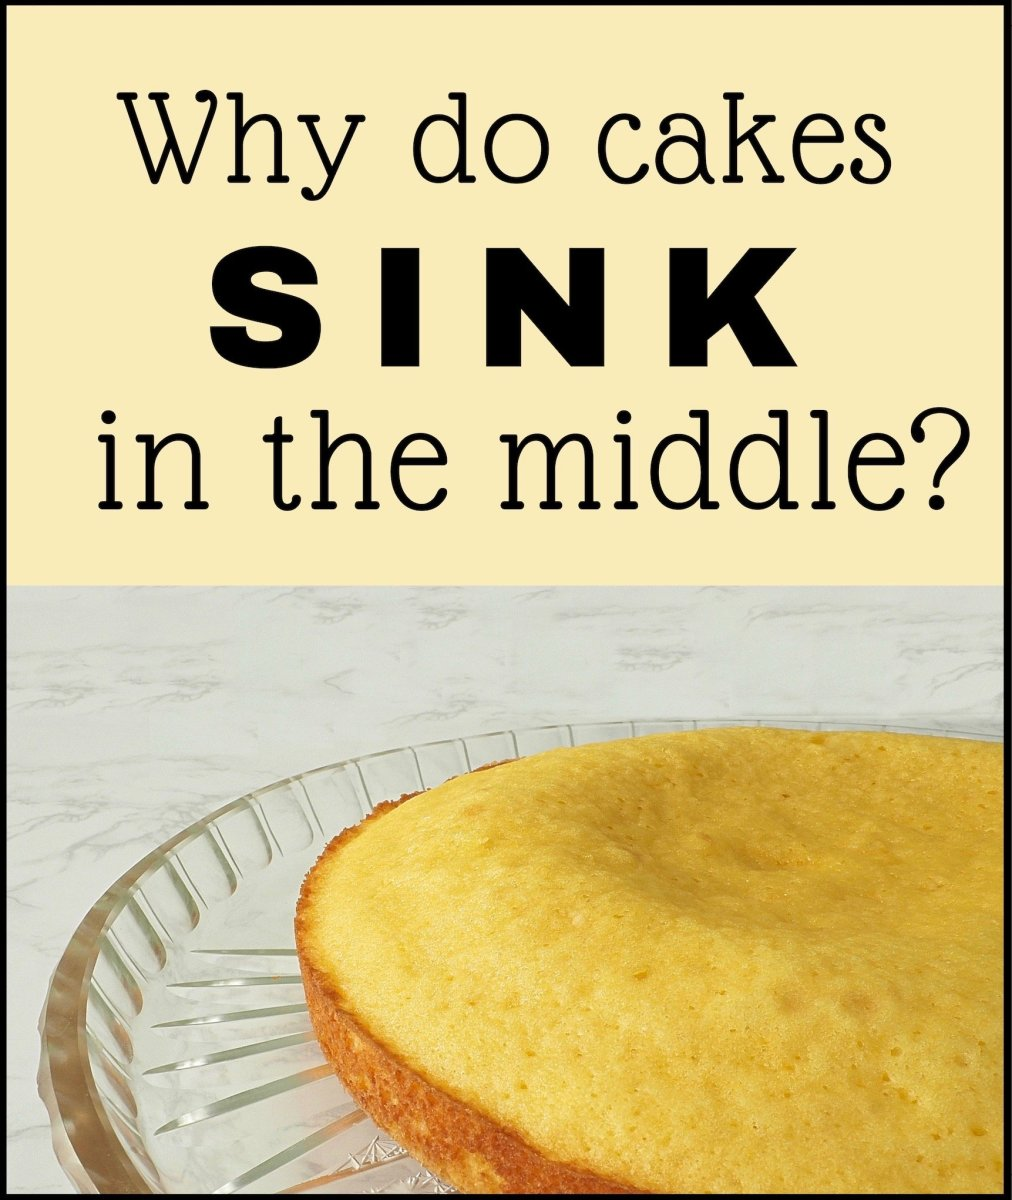 Why Did My Cake Sink in the Middle? (And How Can I Fix It?)